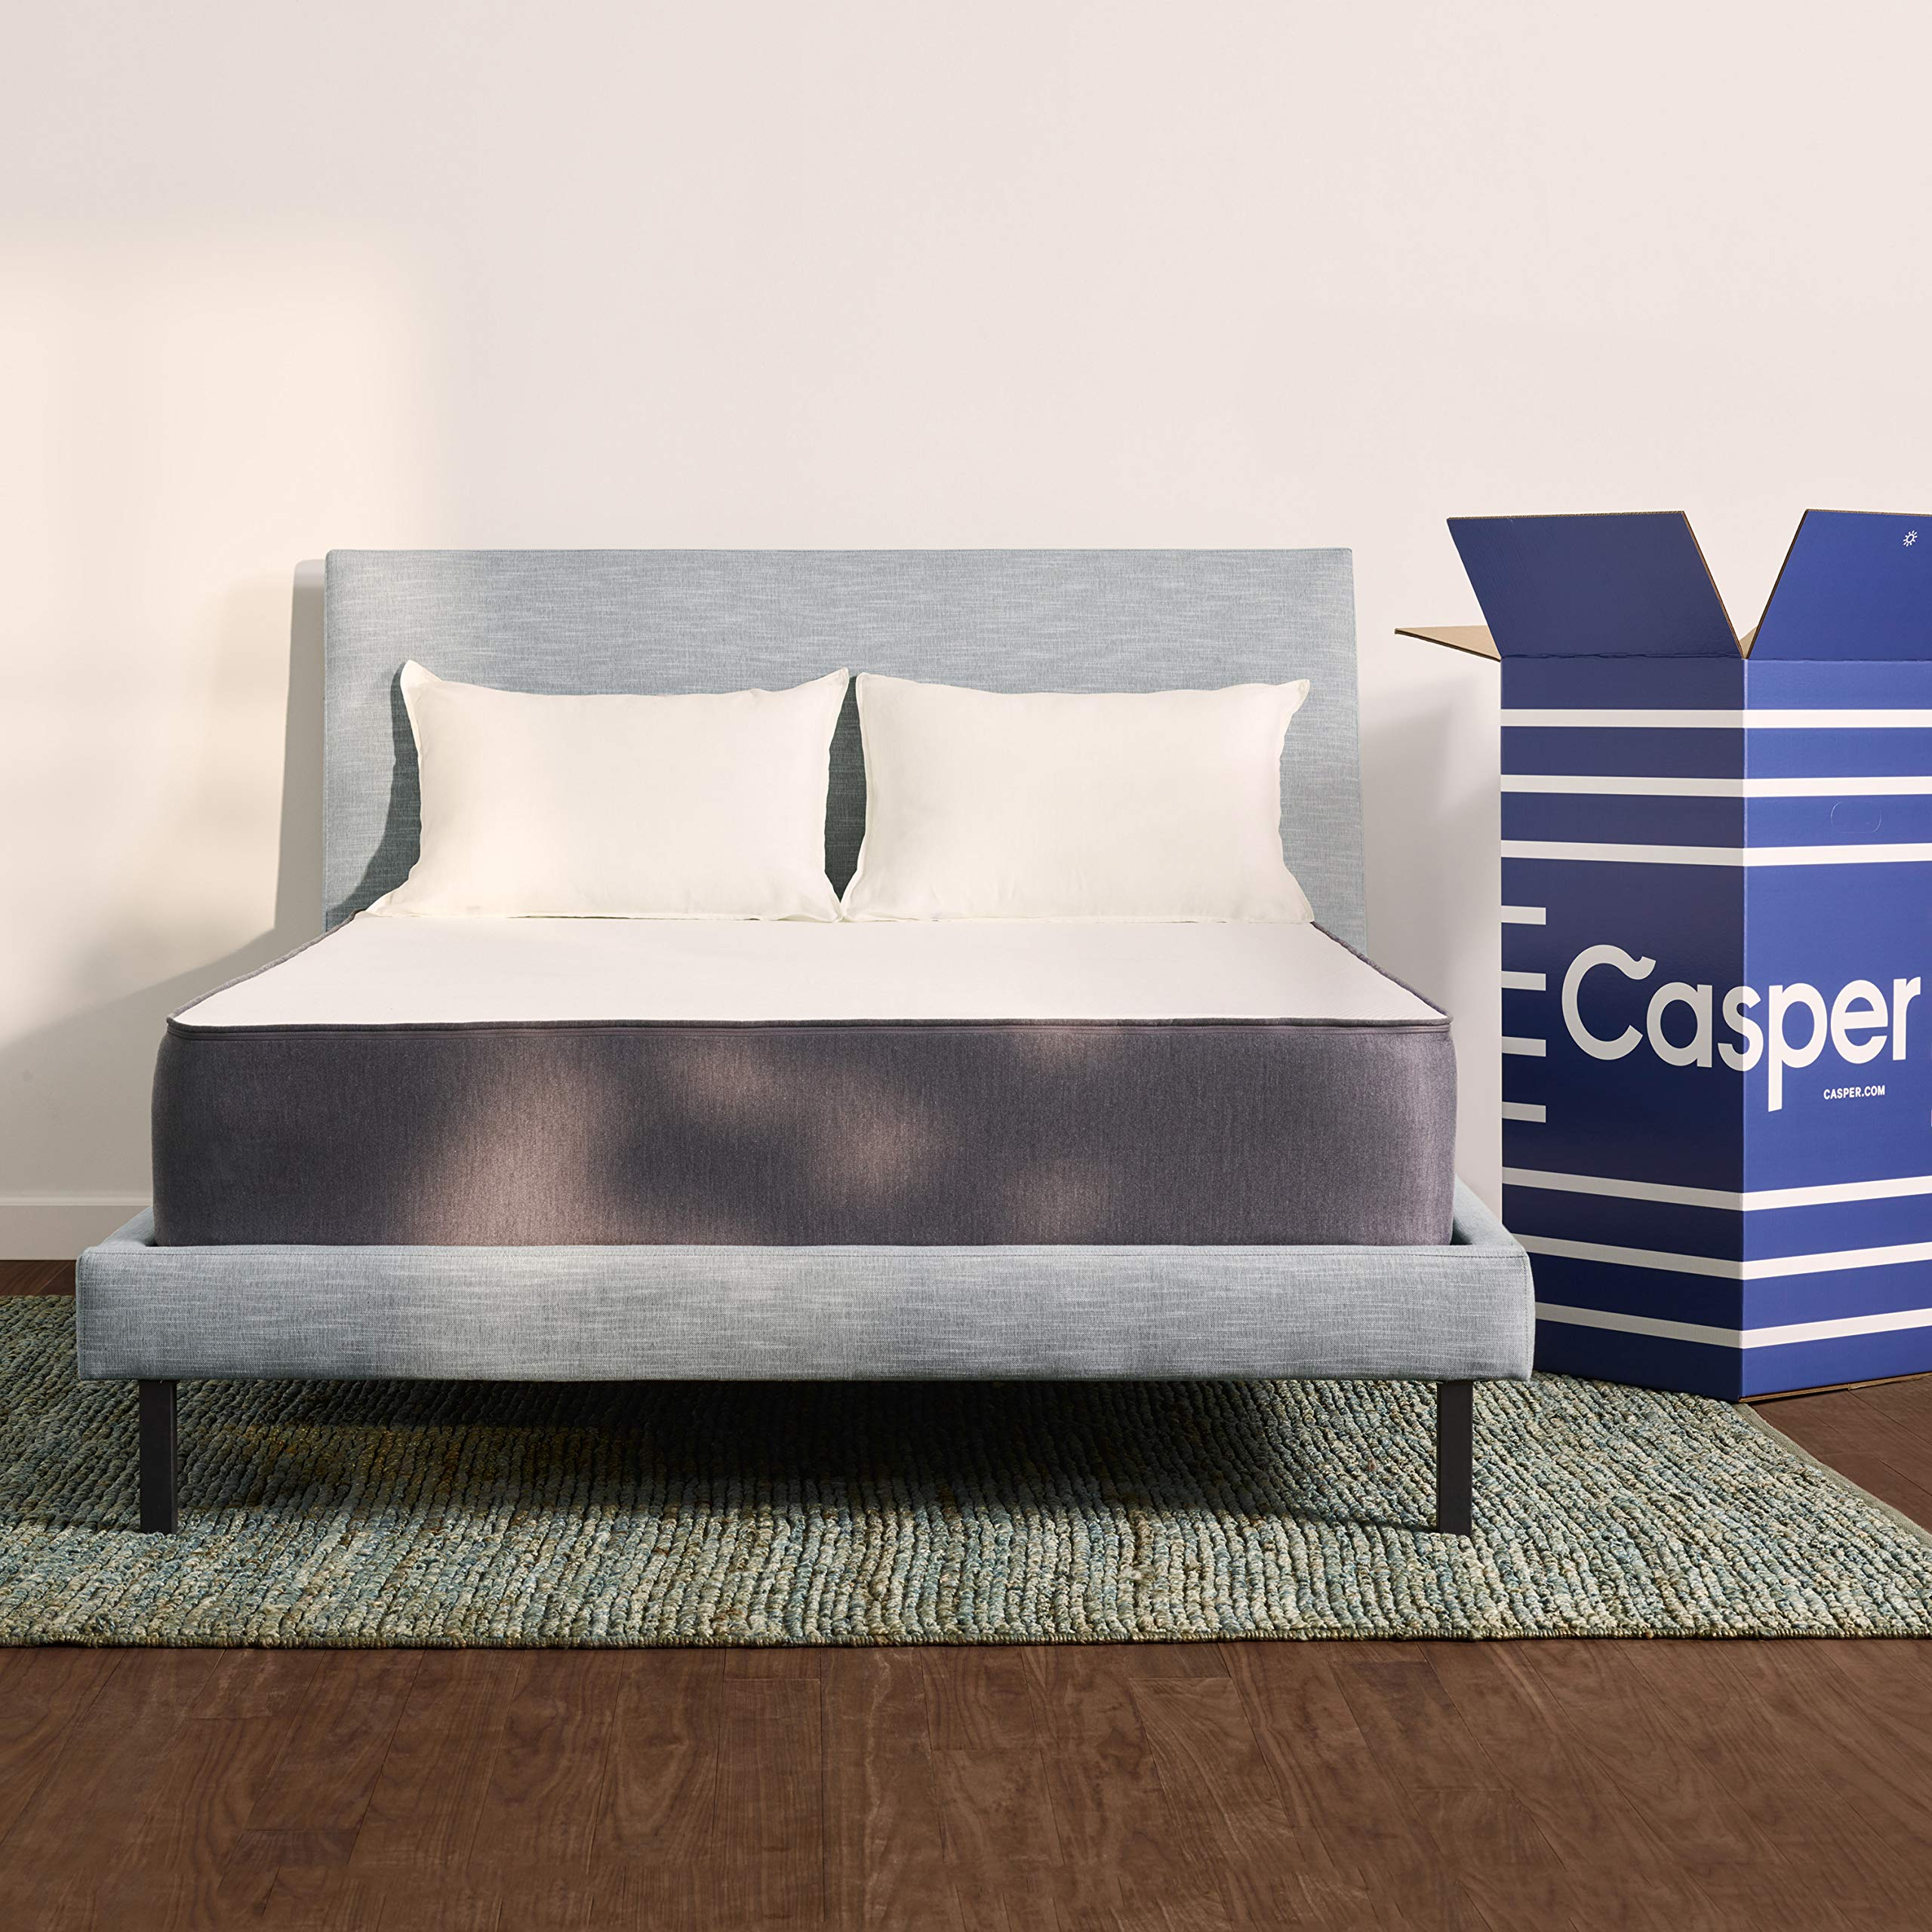 Casper Sleep Hybrid Mattress, King 12'' by Casper Sleep